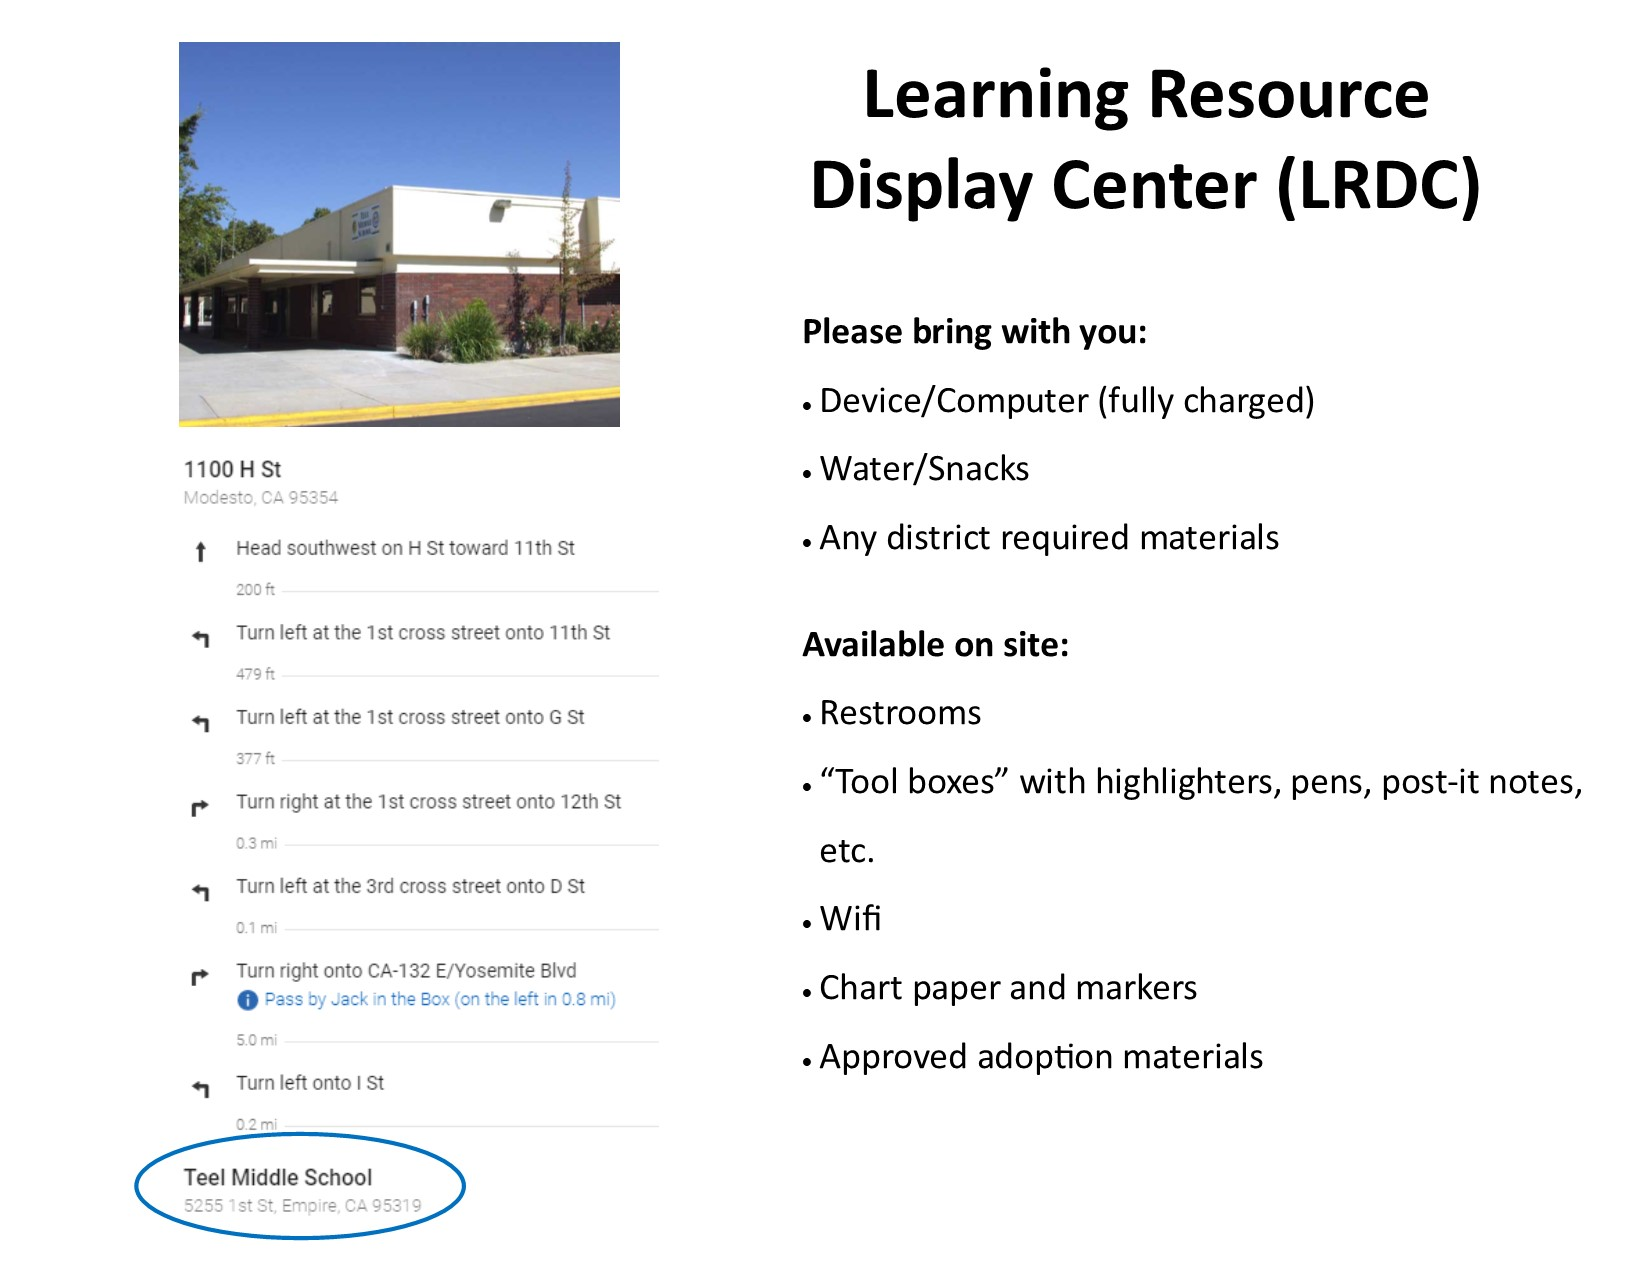 Learning Resources Display Center Location & Amenities